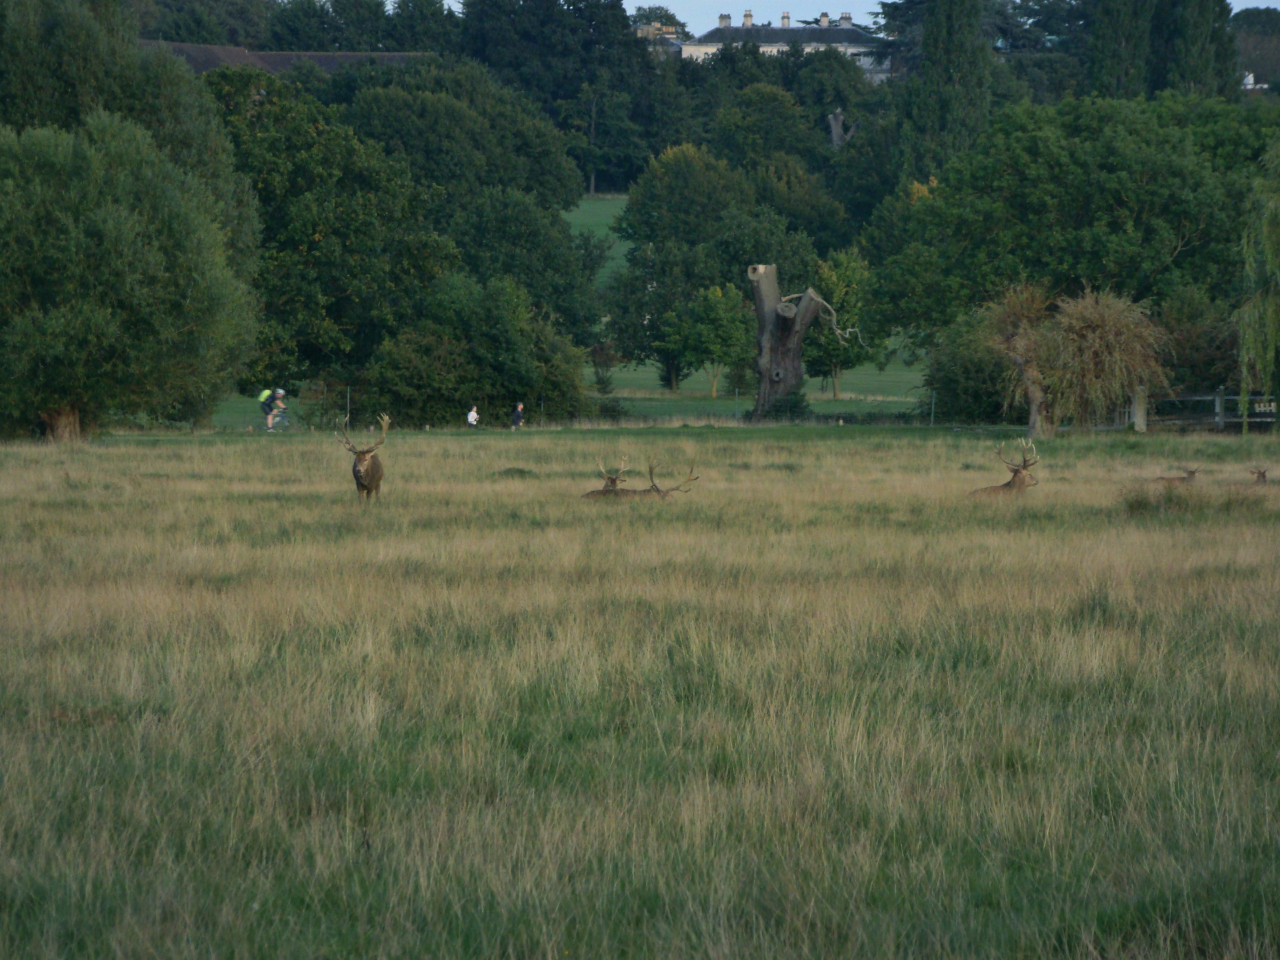 Red deer stags in Richmond Park, London, 29 September 2015